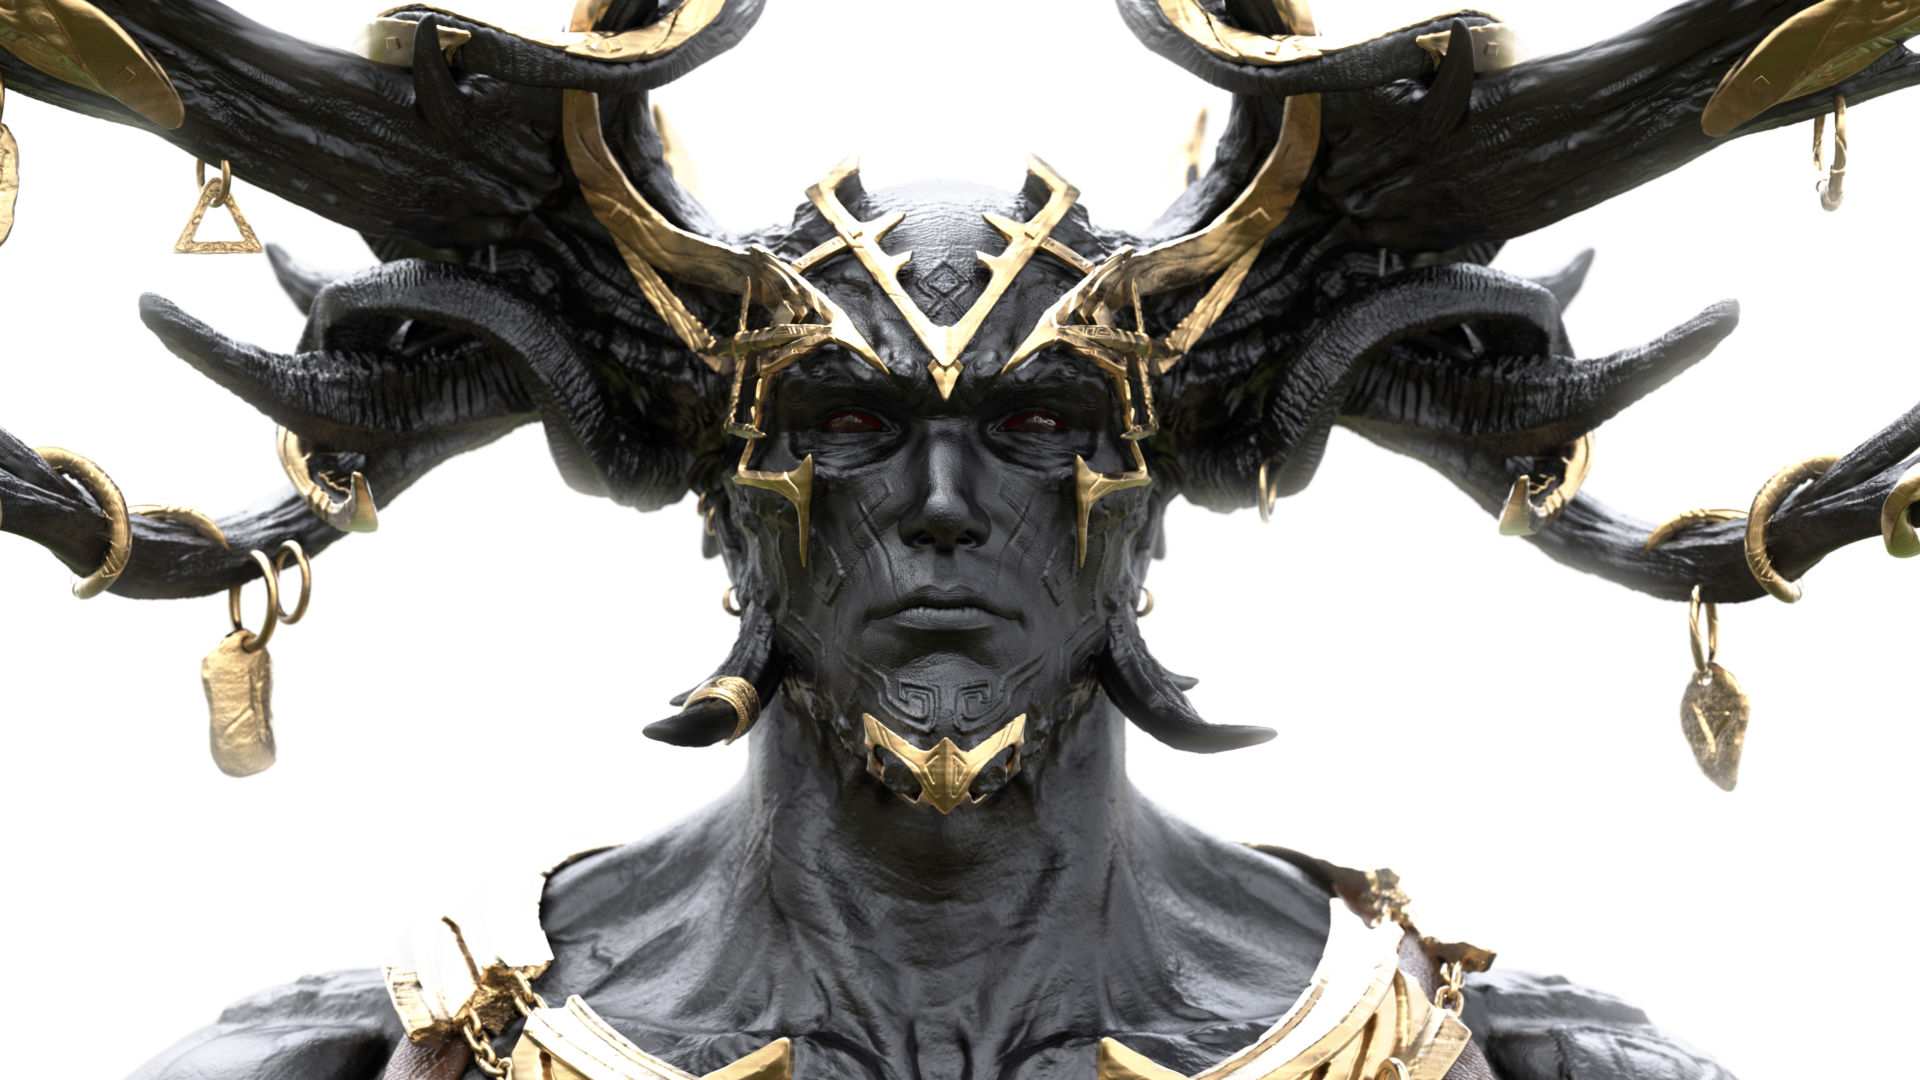 A screenshot of Loki's head and crown from the game Rune 2